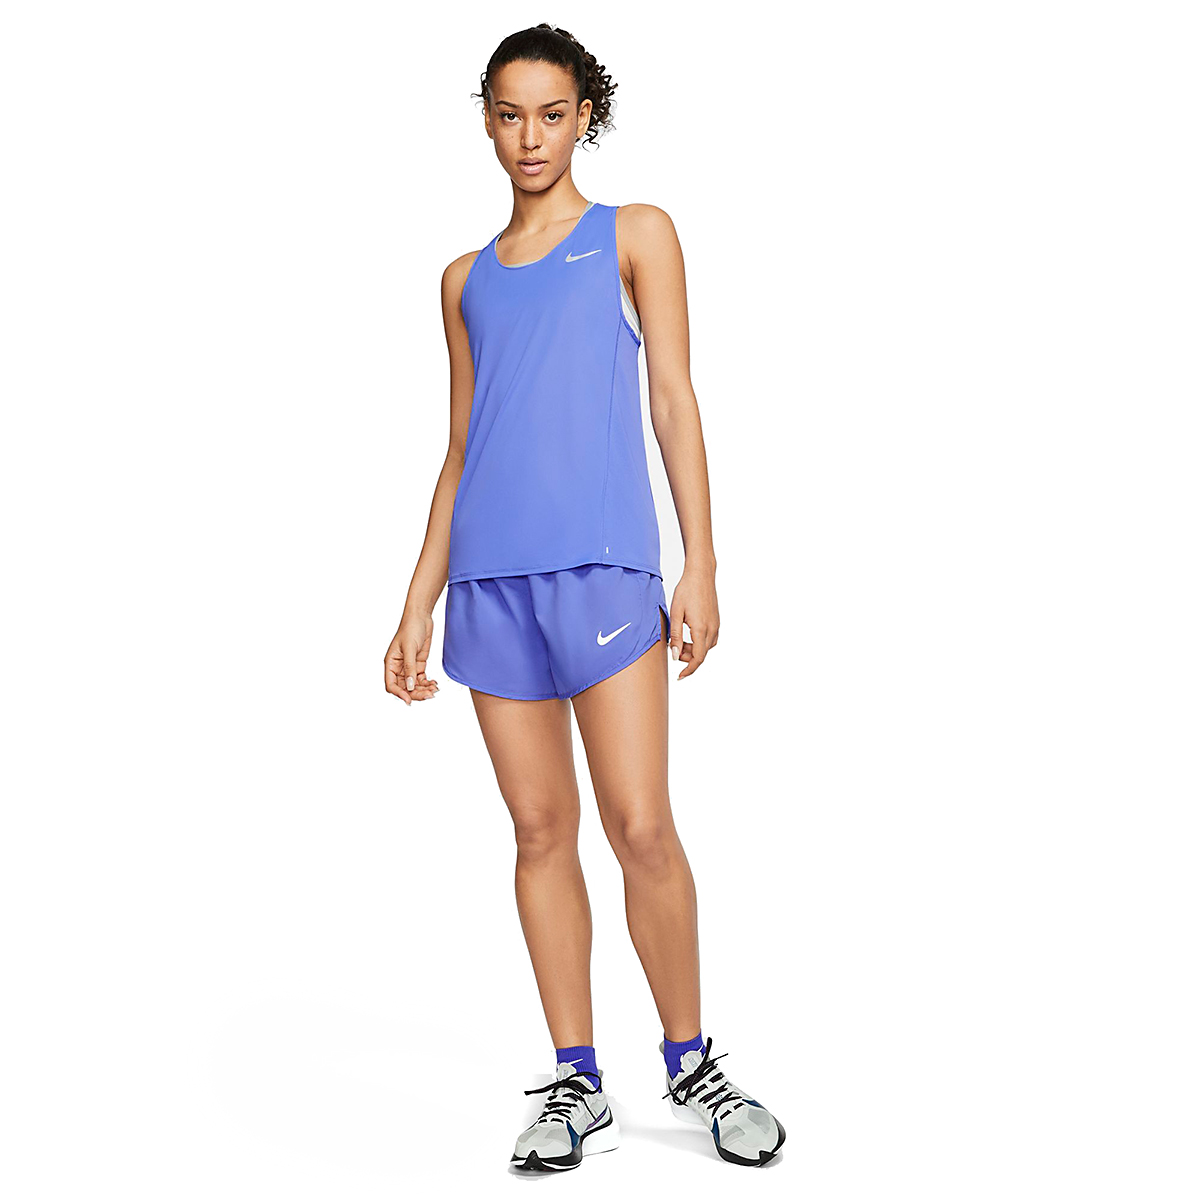 Women's Nike City Sleek Running Tank - Color: Sapphire - Size: XS, Sapphire, large, image 3